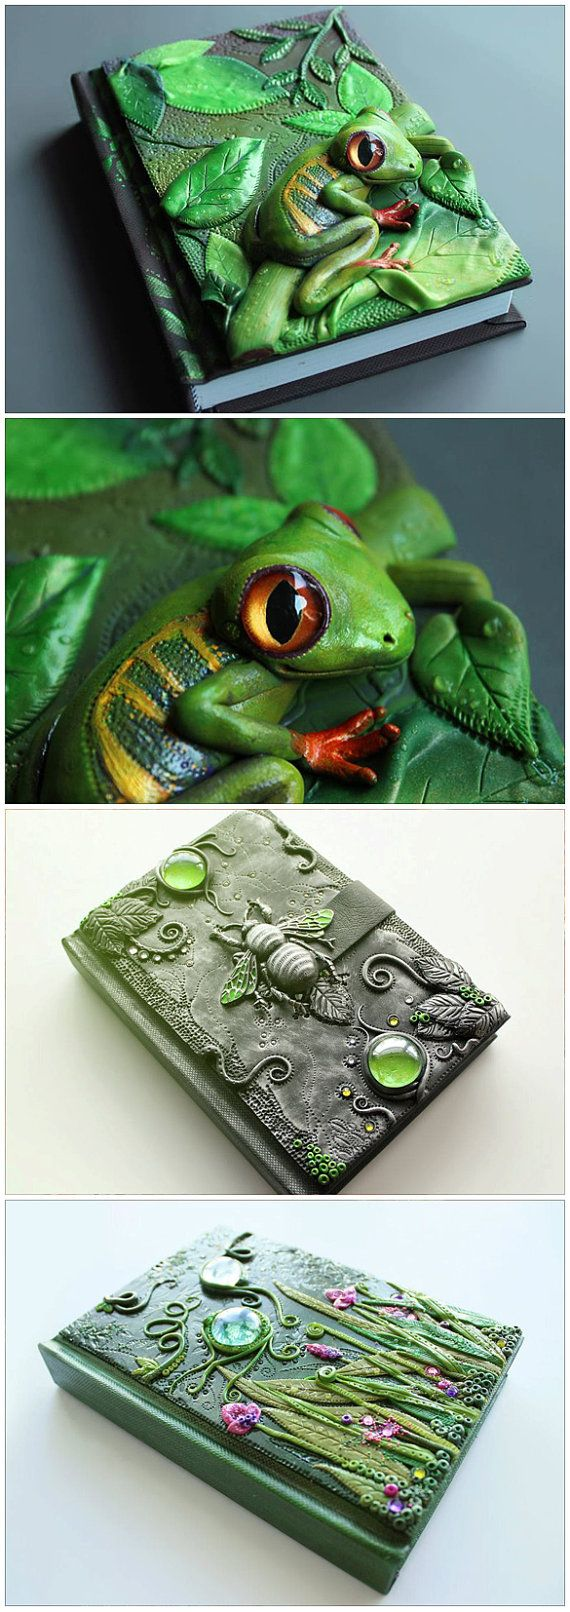 Polymer clay journals/ secret diaries by amandarinduck on etsy